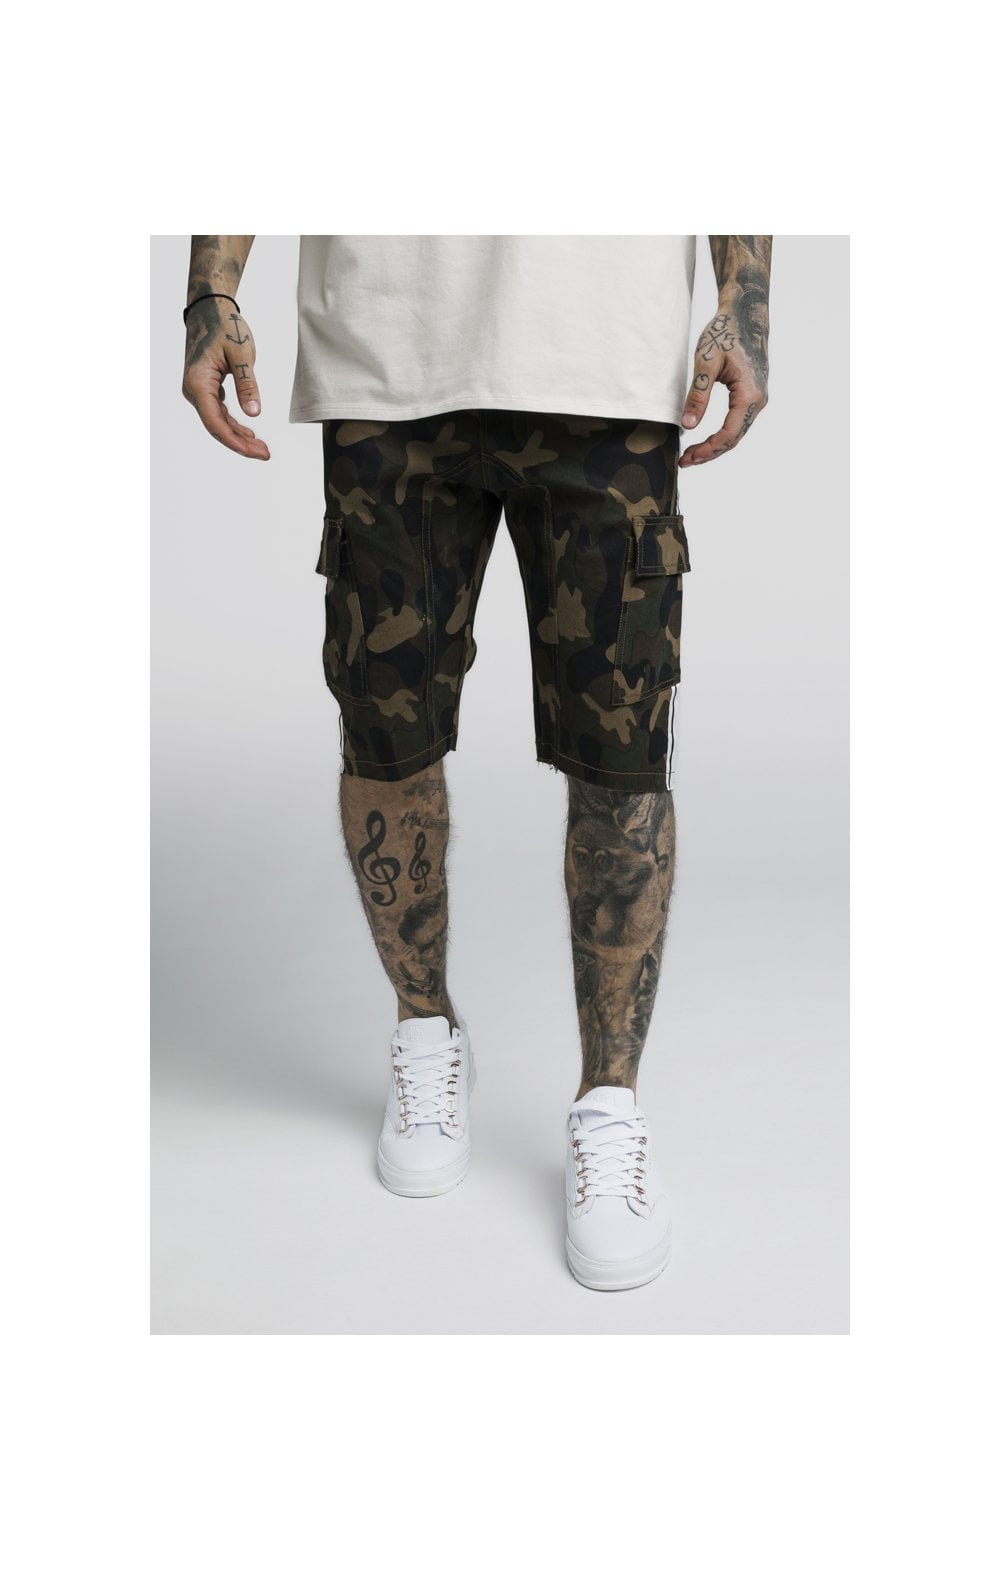 Load image into Gallery viewer, SikSilk Taped Cargo Shorts - Camo (1)